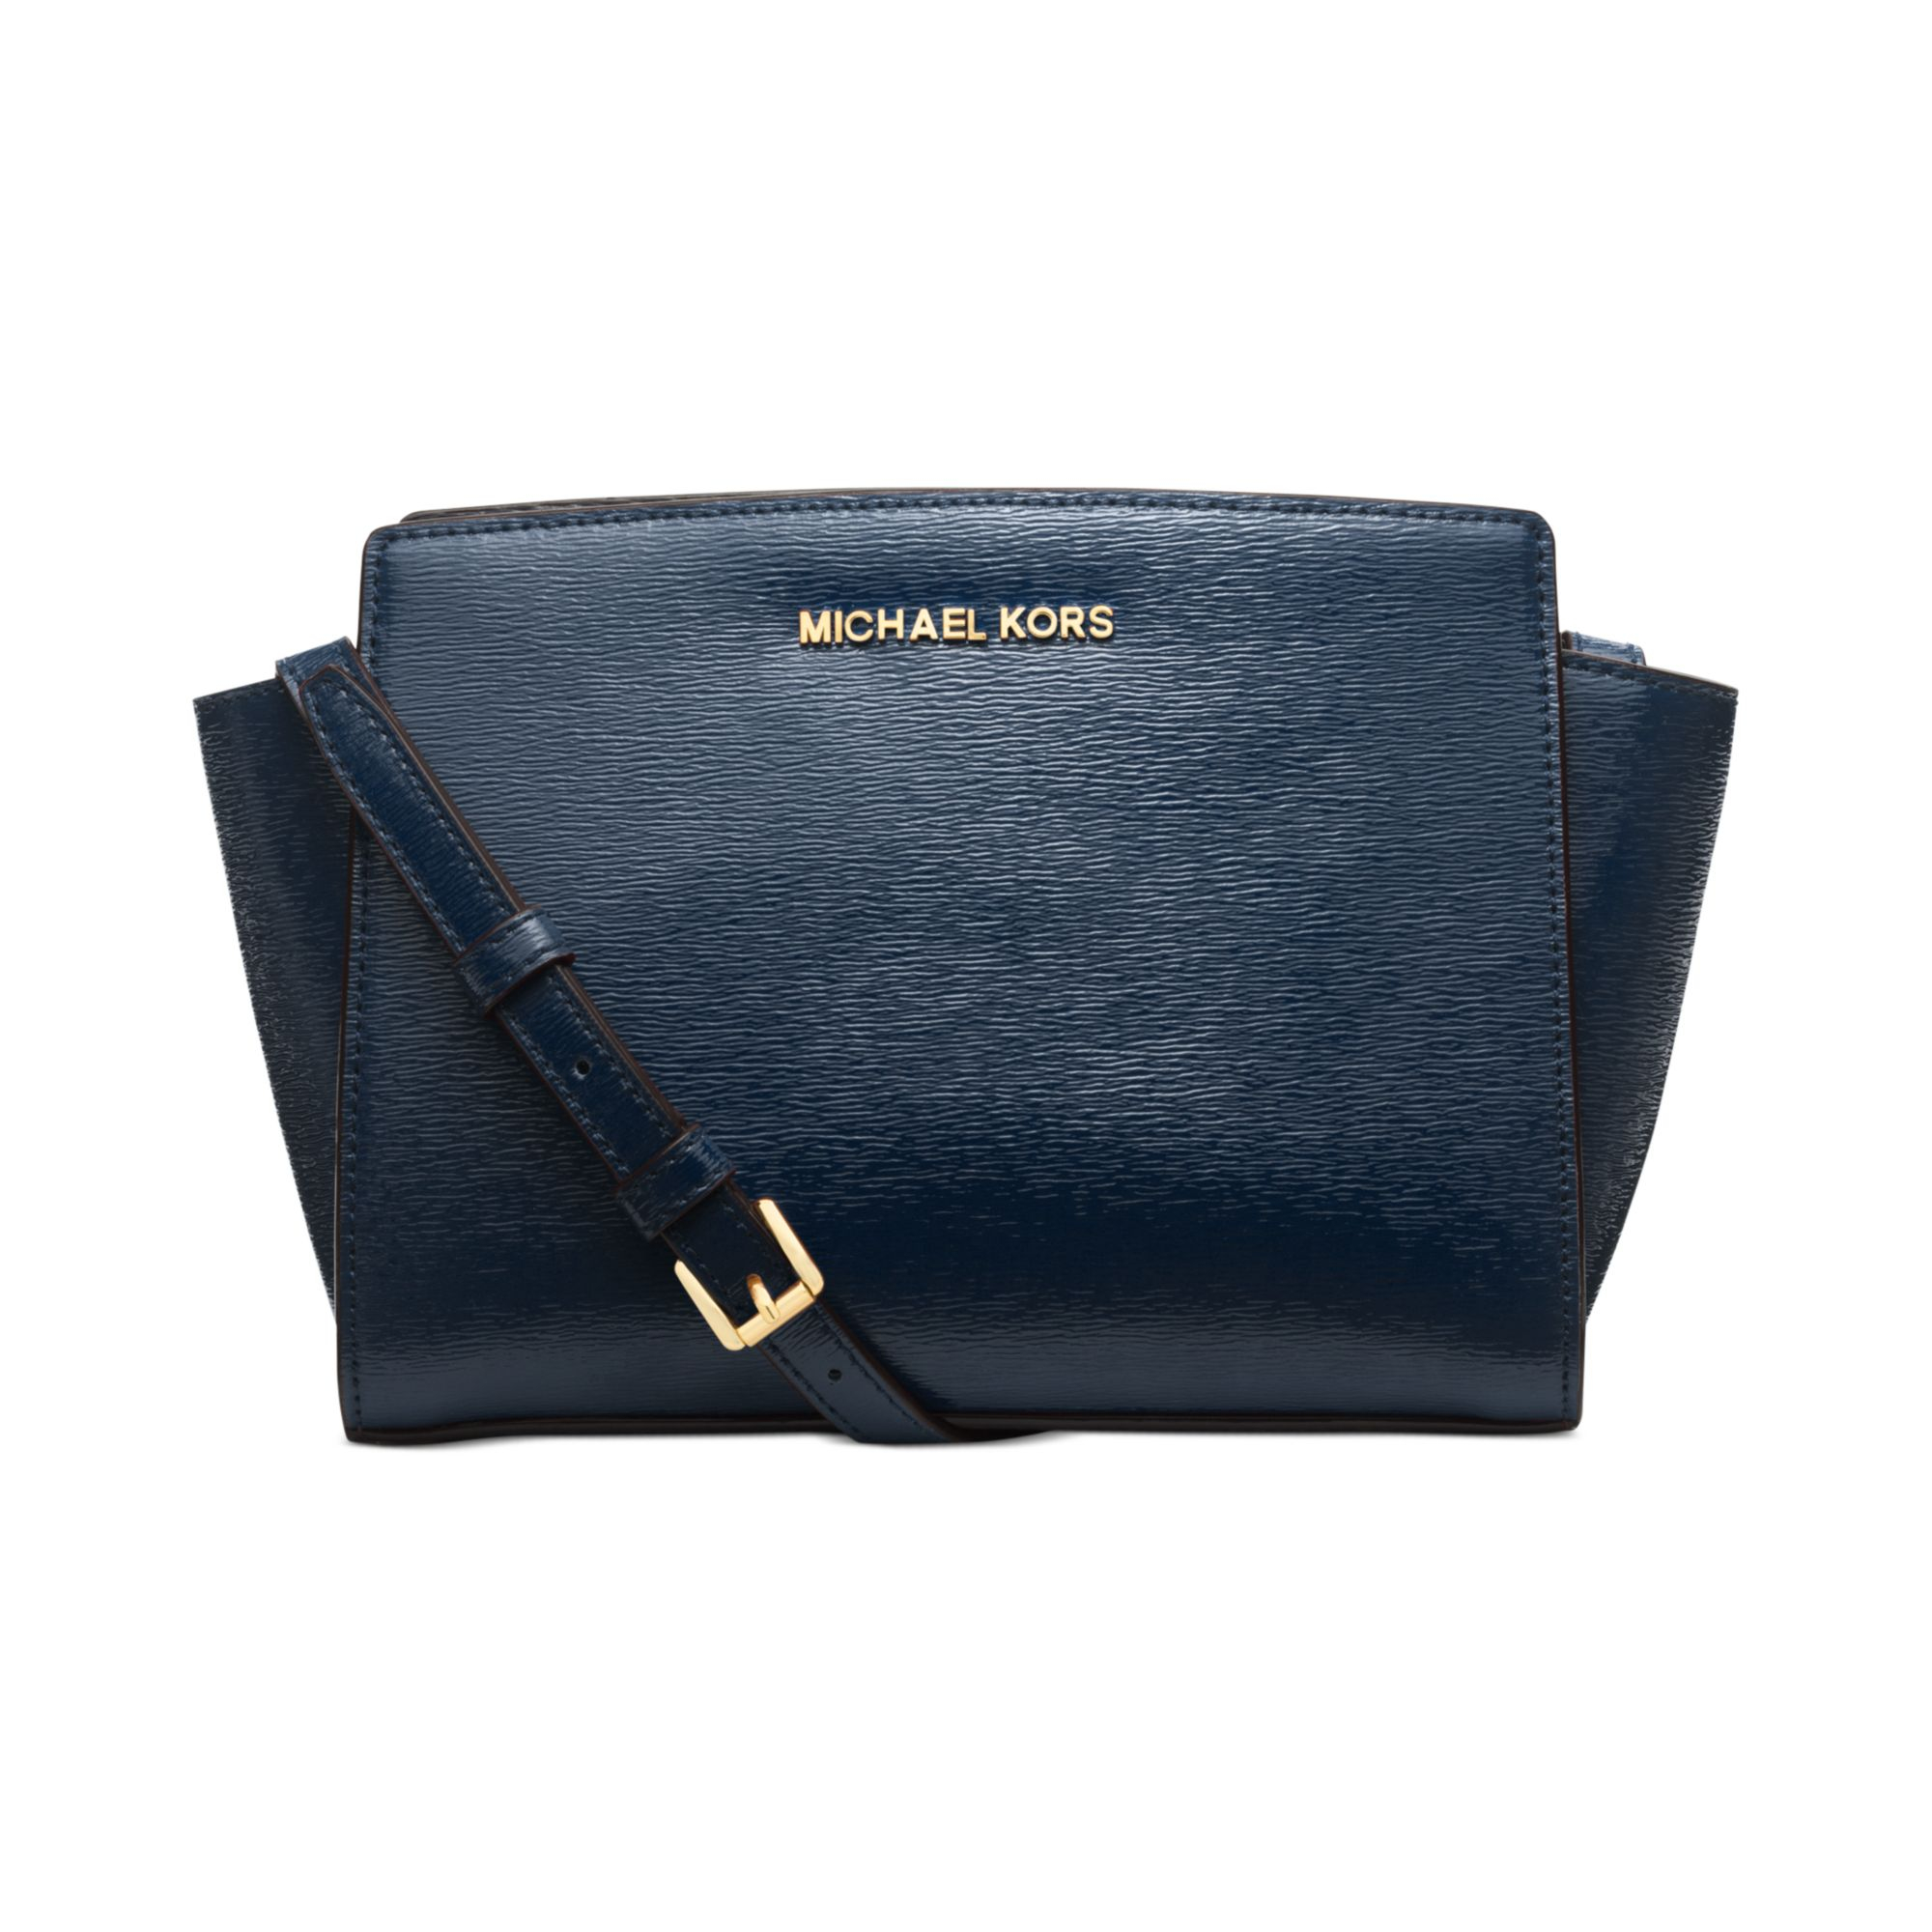 Michael Kors Halvat Laukut : Michael kors selma mini messenger bag car